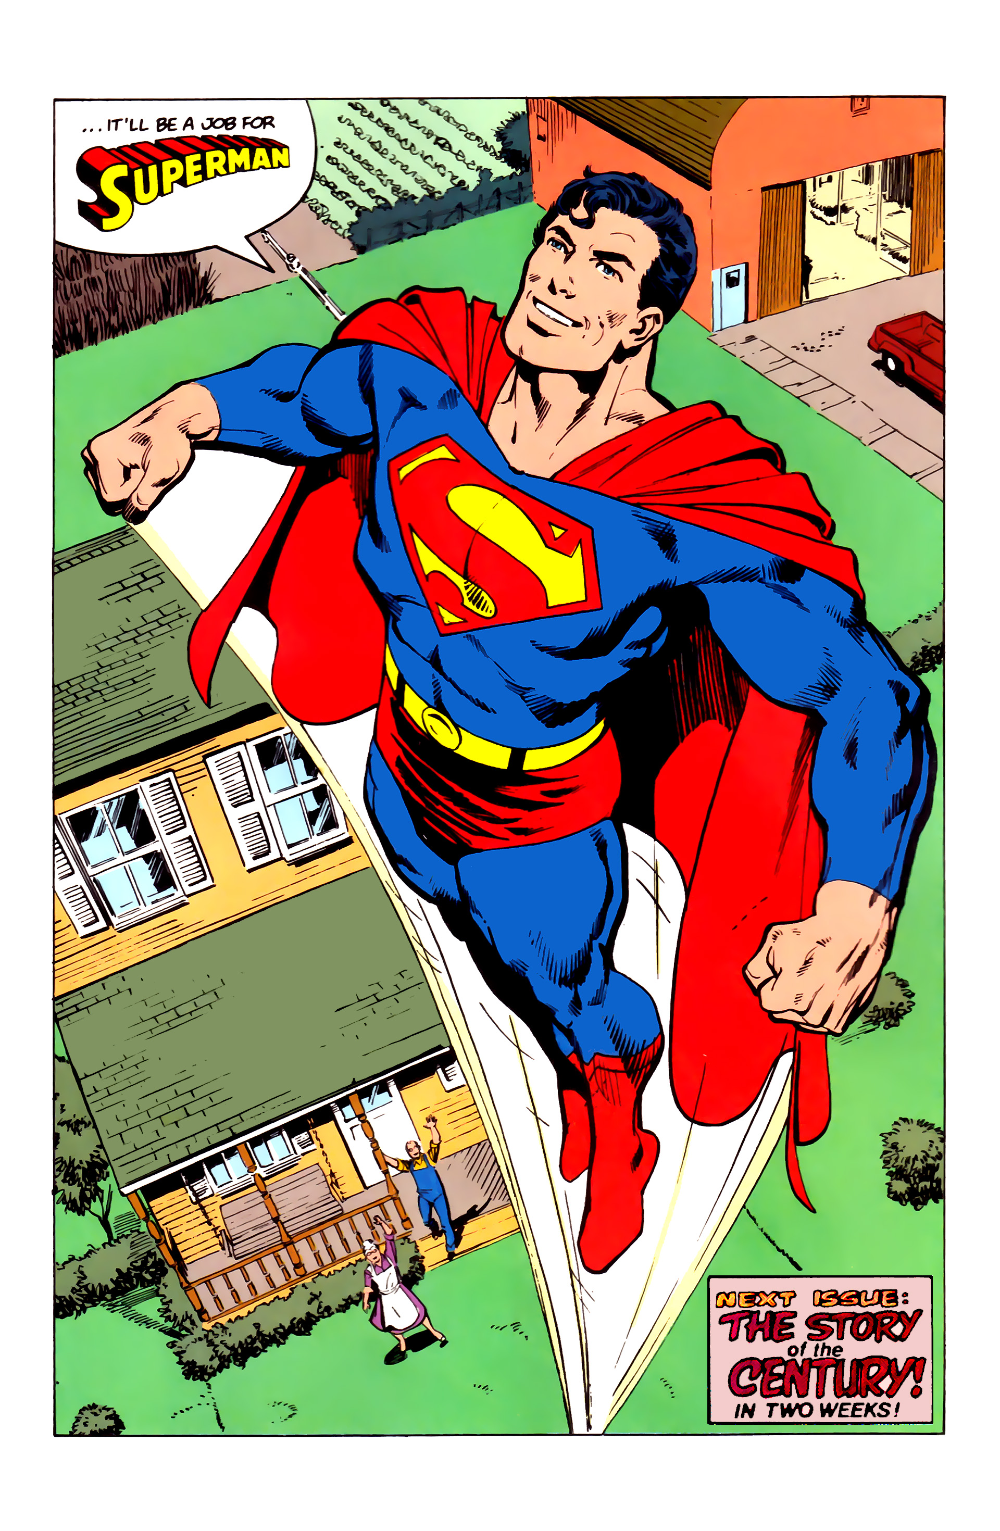 The Man Of Steel 1986 Issue 1 Read The Man Of Steel 1986 Issue 1 Comic Online In High Quality Superman Art Superman Comic Comics